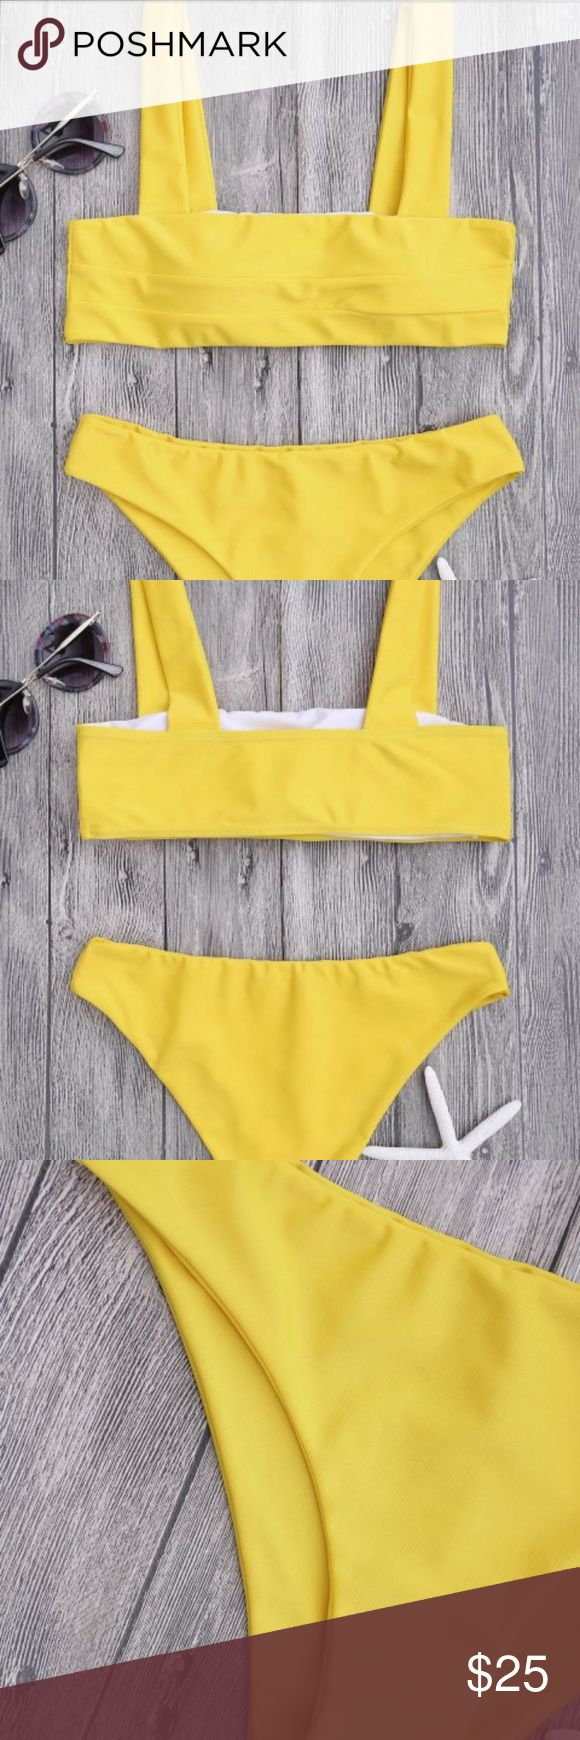 Yellow Bandeau Bikini Sleek and clean bathing suit featuring square cut collarline pullover style bikini top and cheeky swim bottoms. (New, never worn!) (Brand not listed, listed otherwise for exposure) Urban Outfitters Swim Bikinis